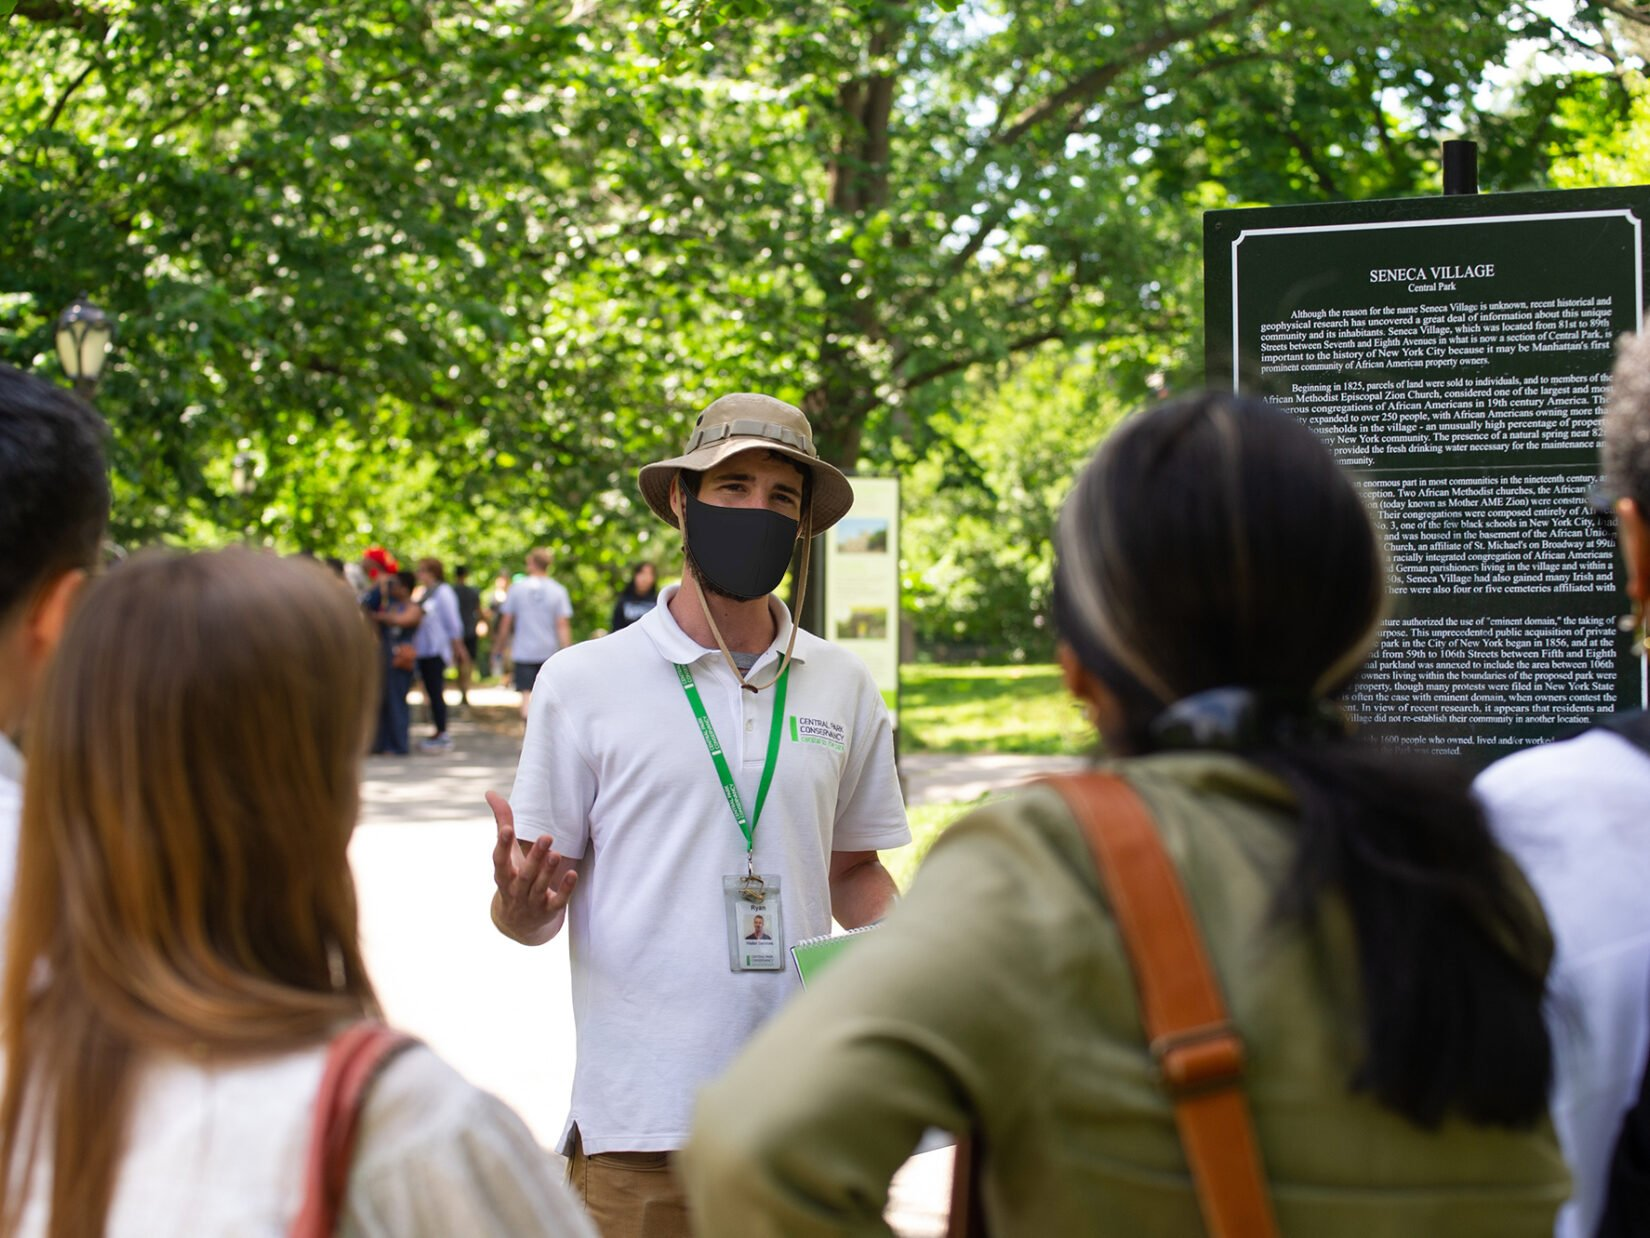 A Conservancy guide addresses a tour group at the Seneca Vaillage site